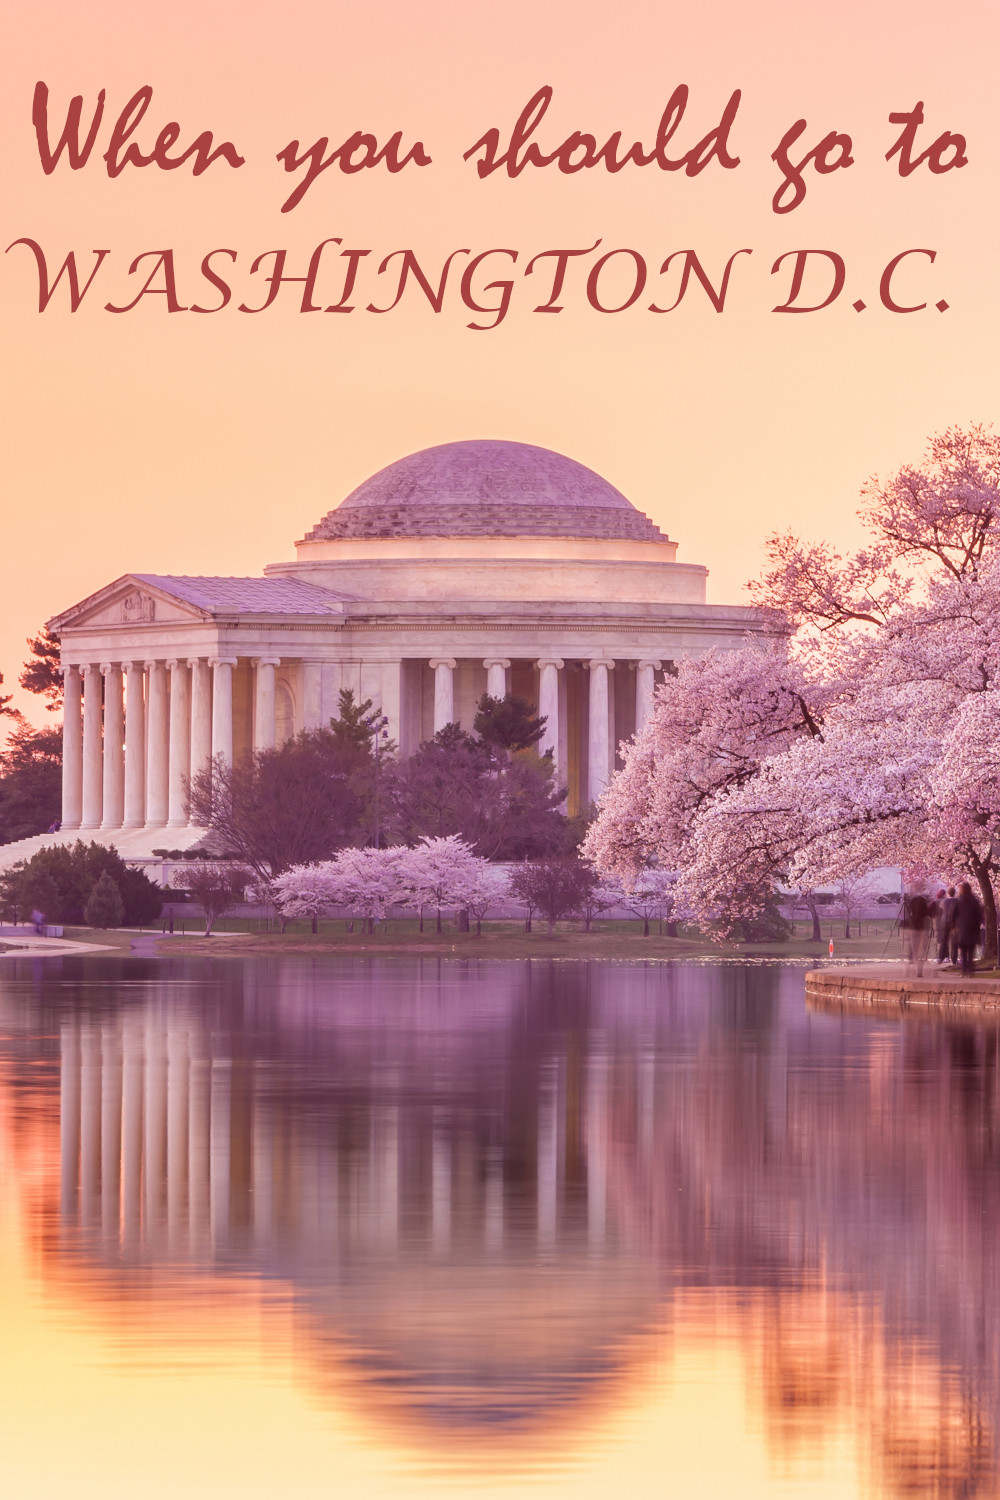 Best time to visit Washington D.C. - the complete guide for when you should go for the weather, festivals and everything else.